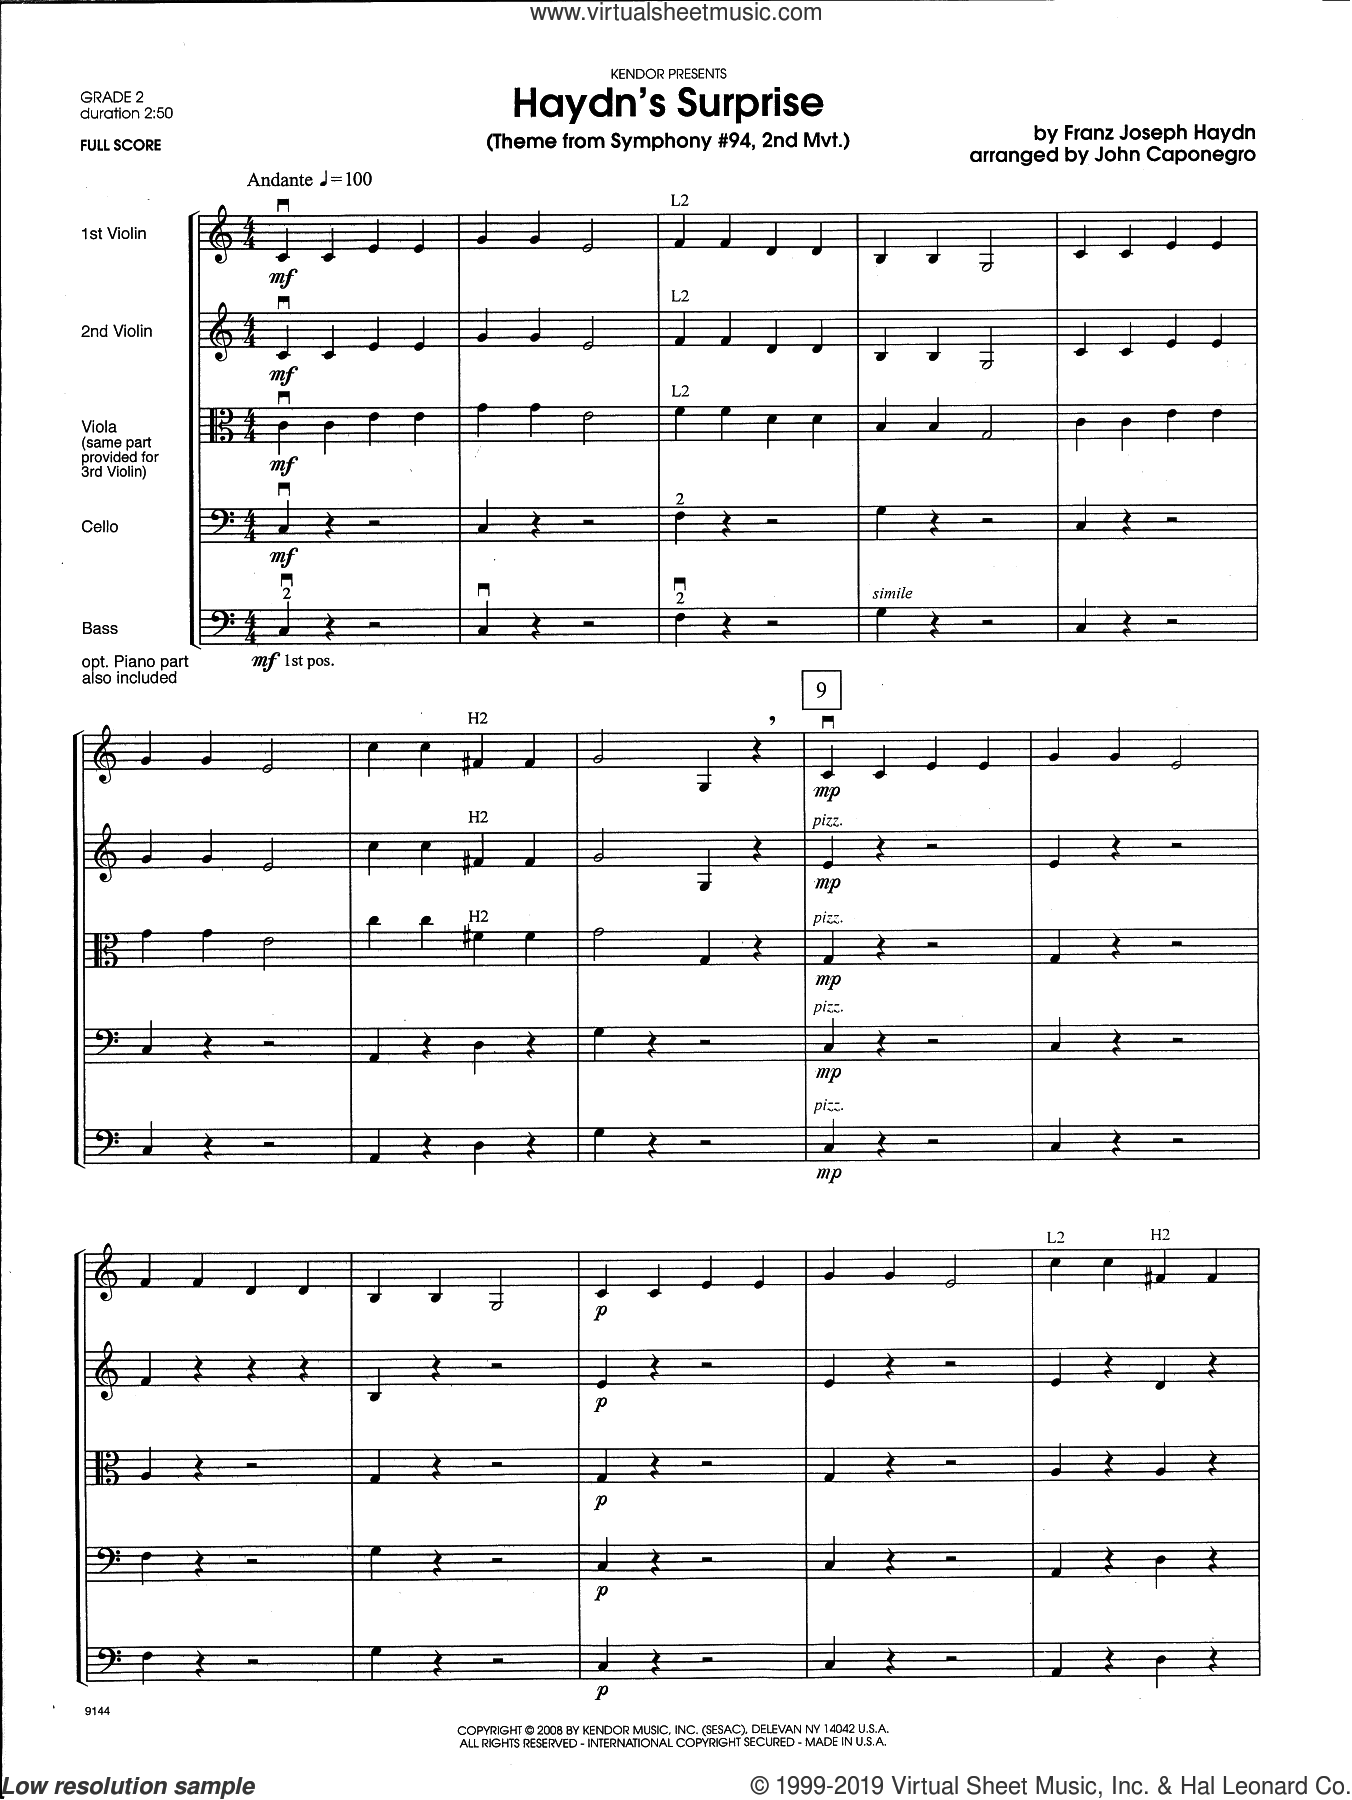 Haydn's Surprise (Theme from Symphony #94, 2nd Mvt.) (COMPLETE) sheet music for orchestra by Franz Joseph Haydn and John Caponegro, intermediate skill level